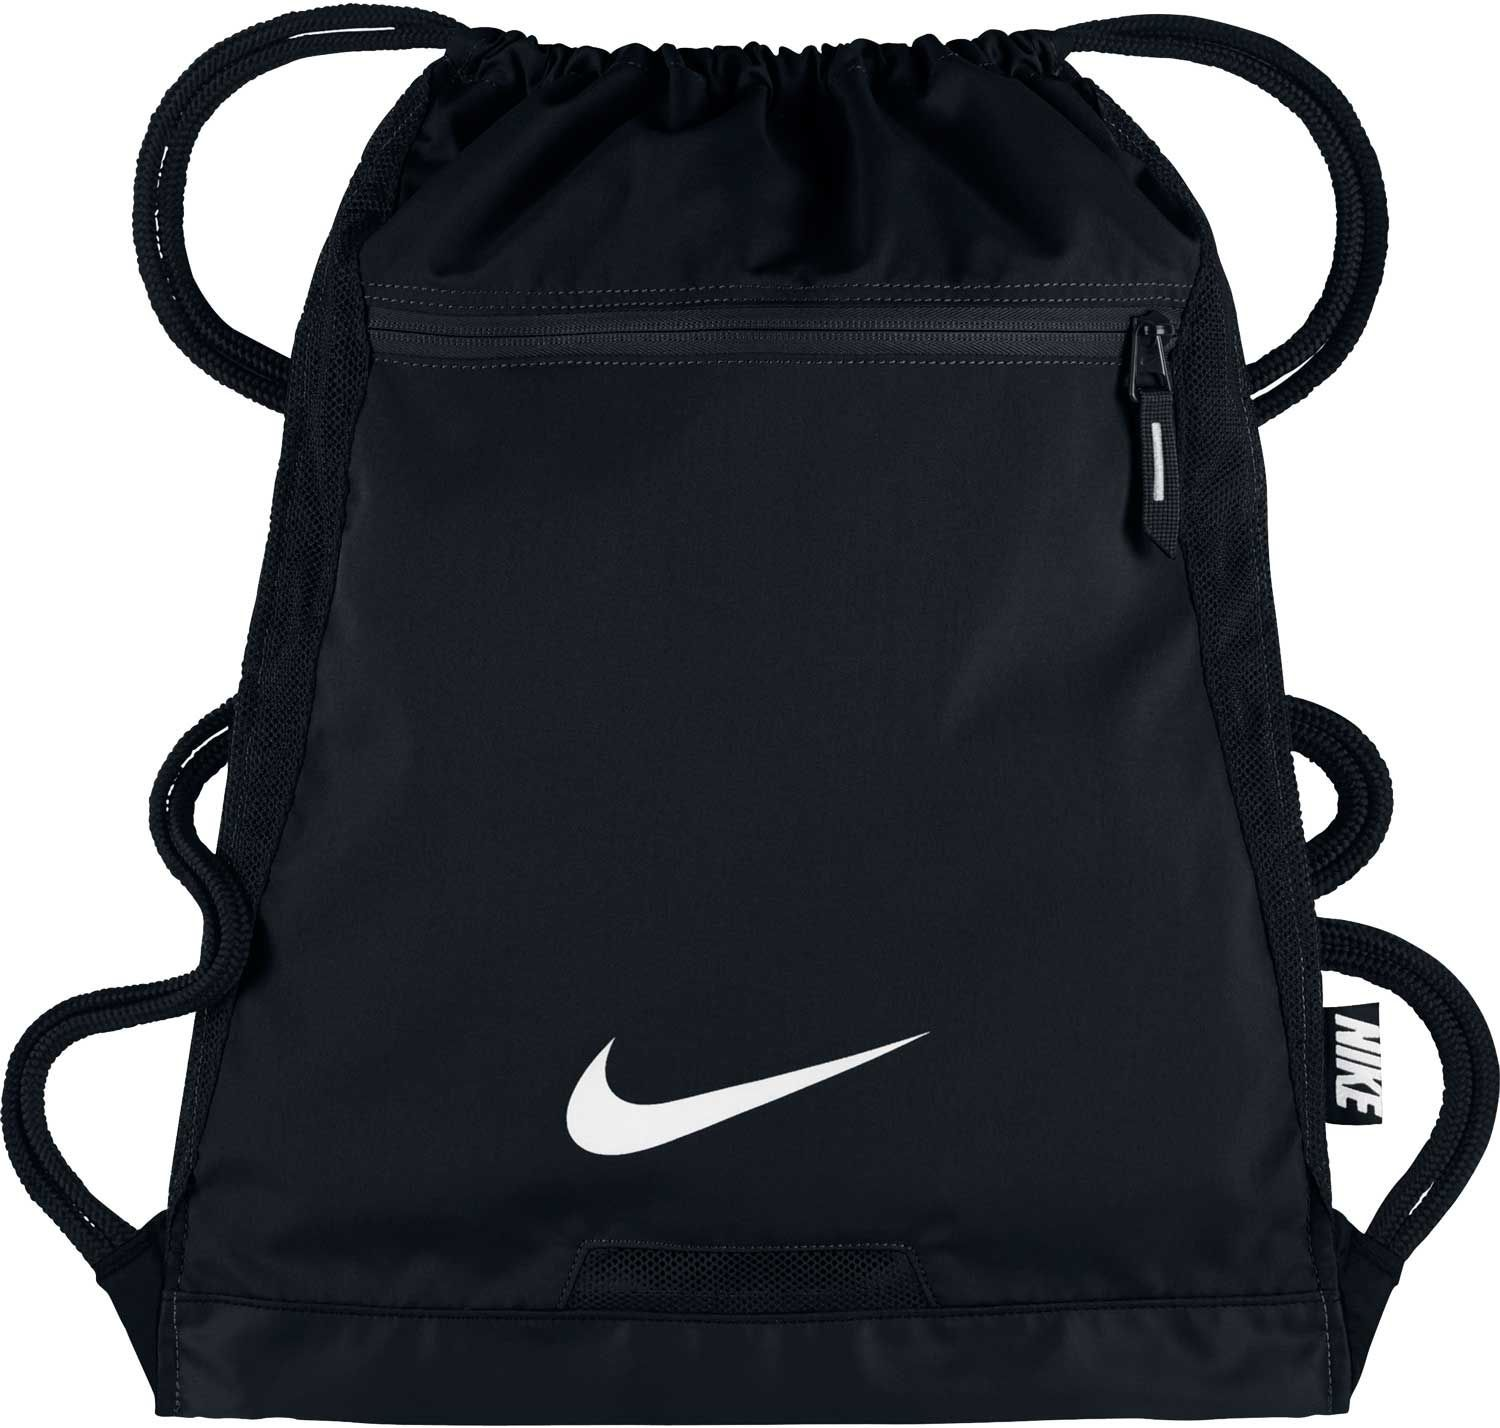 Adapt Alpha BagBag PackProducts Sports Nike Sack shQdxCtBr